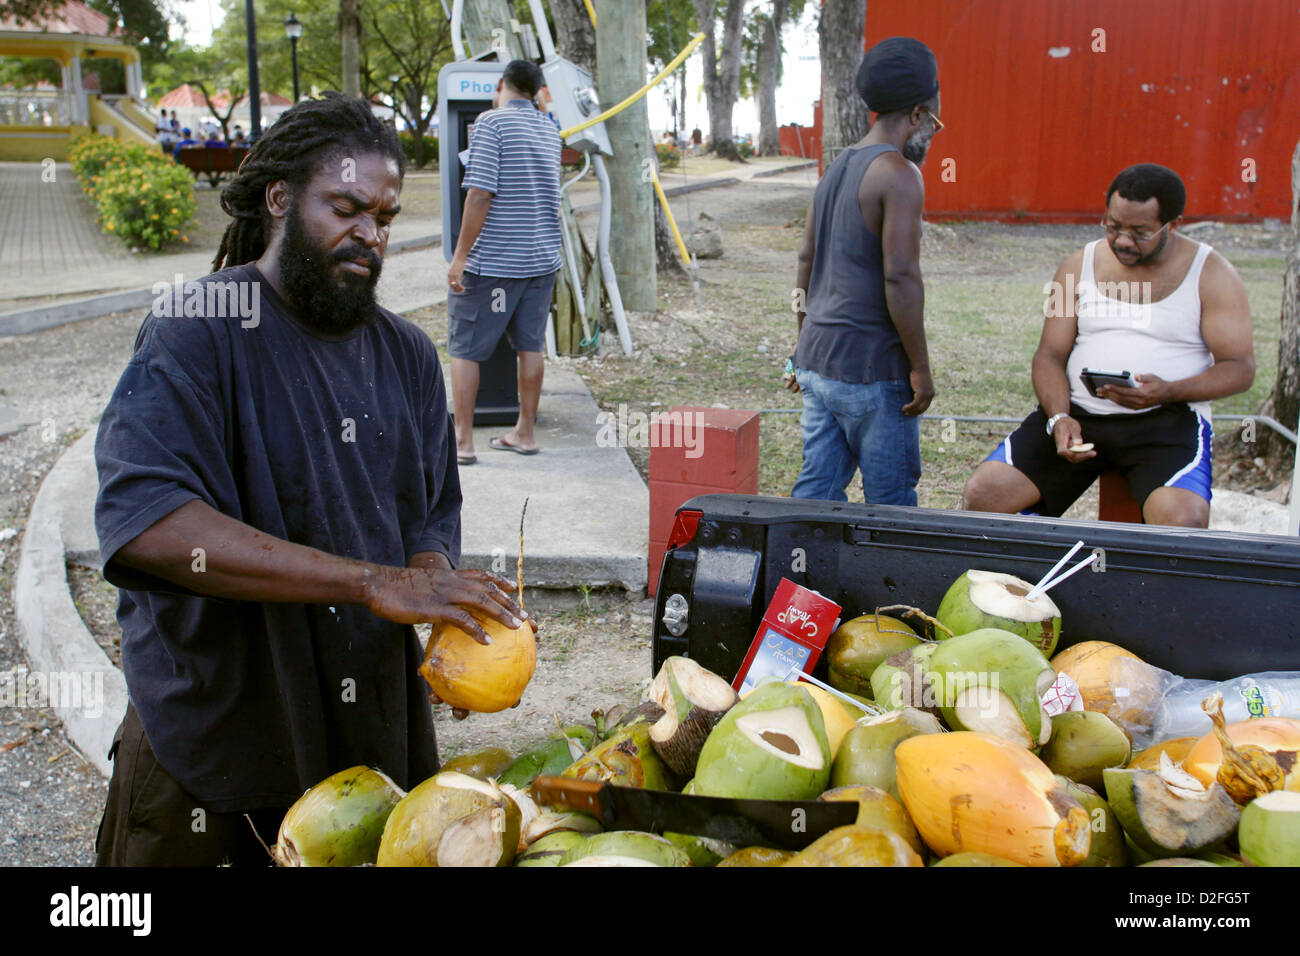 Selling Coconut Drinks from the back of his Truck, Frederiksted, St. Croix, US Virgin Islands, Caribbean - Stock Image